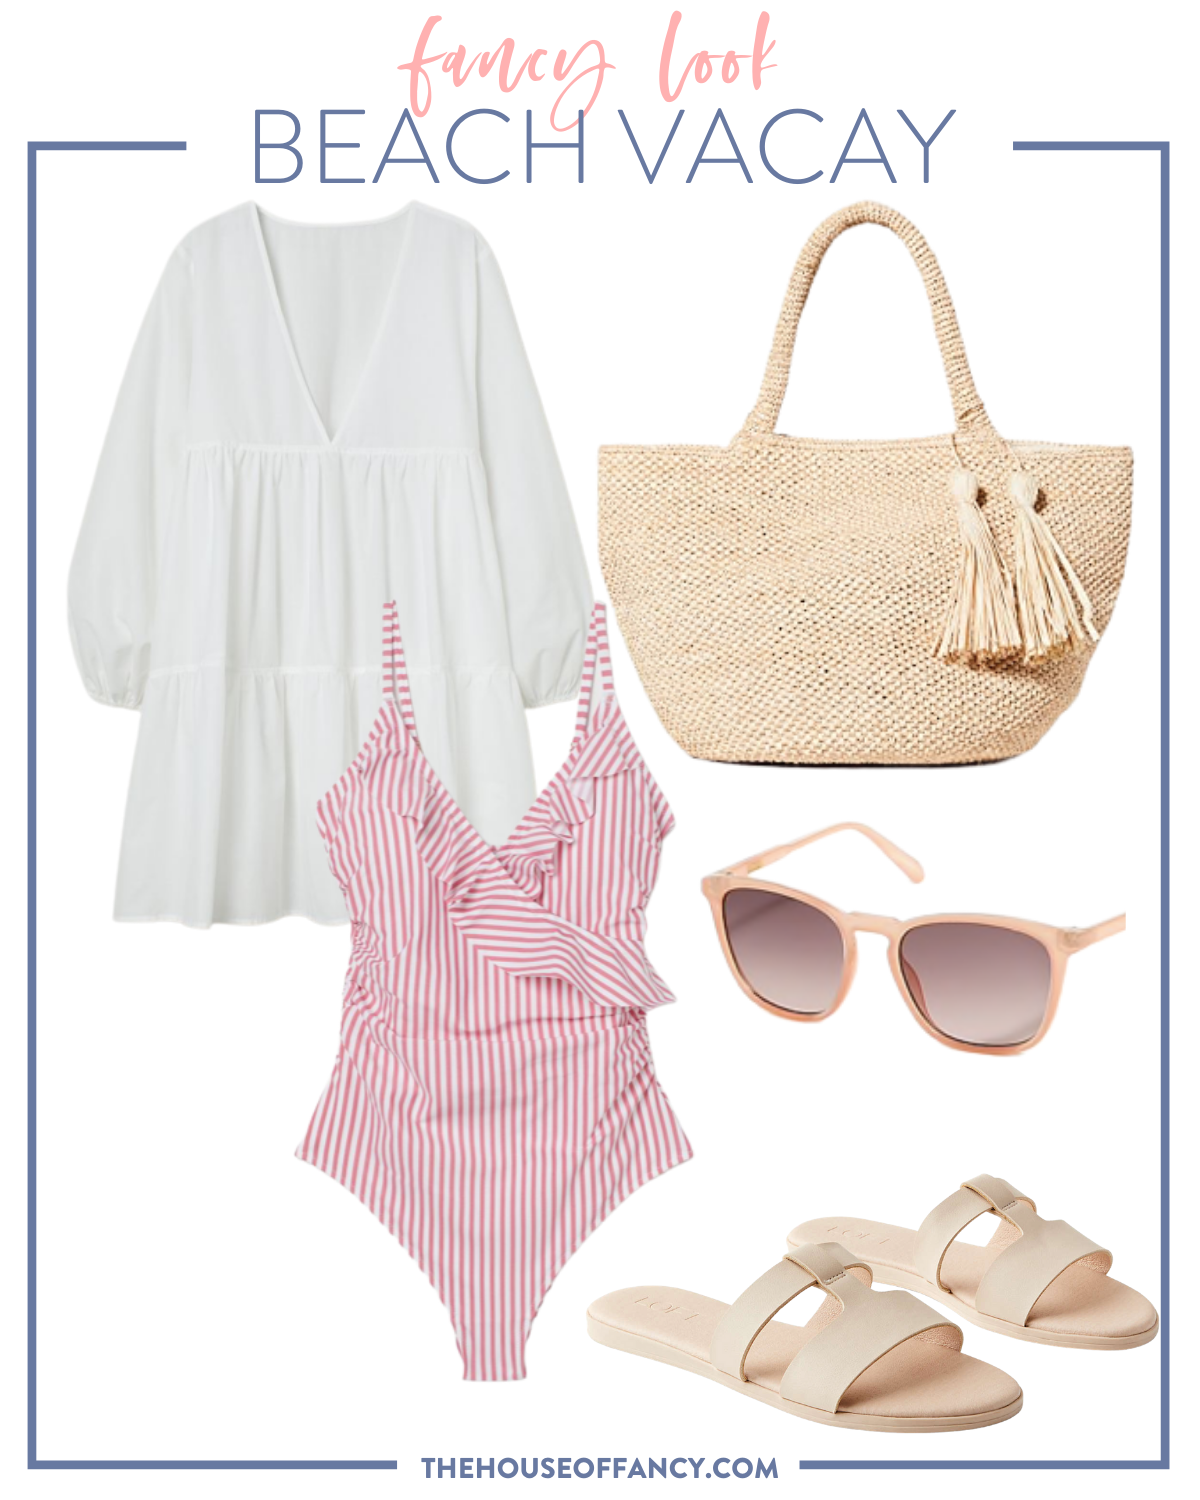 Summer Outfit Ideas by popular Houston fashion blog, The House of Fancy: collage image of white babydoll dress, pink and white stripe swimsuit, woven tote, sunglasses and tan strap sandals.